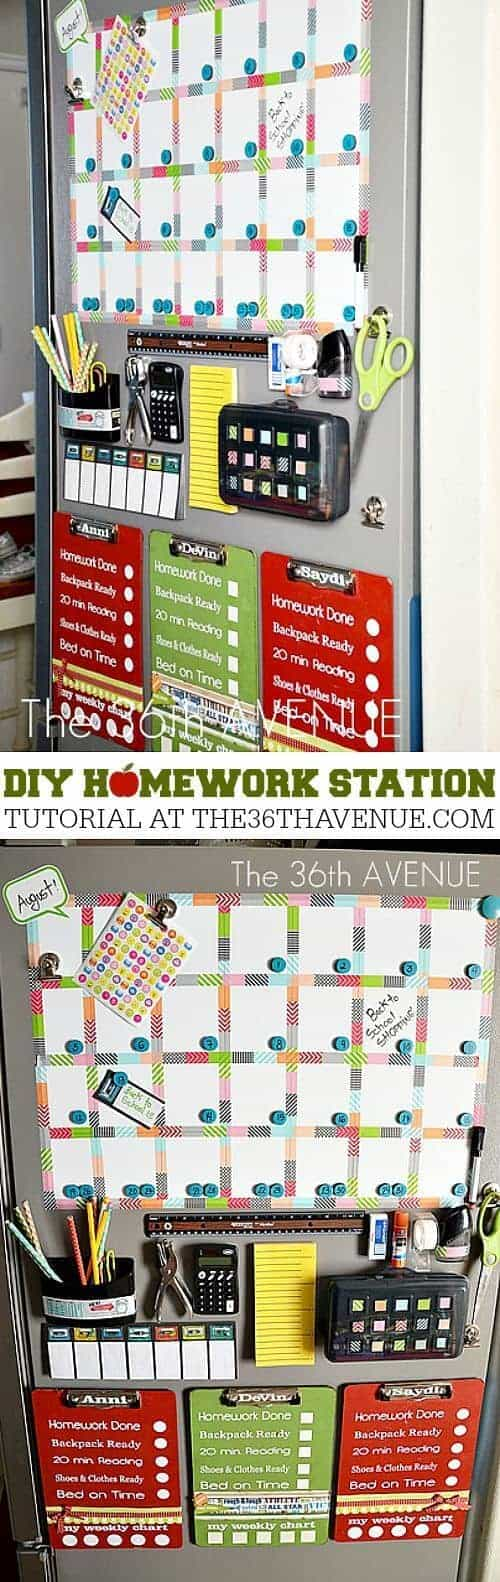 diy-homework-station-at-the36thavenuecom-